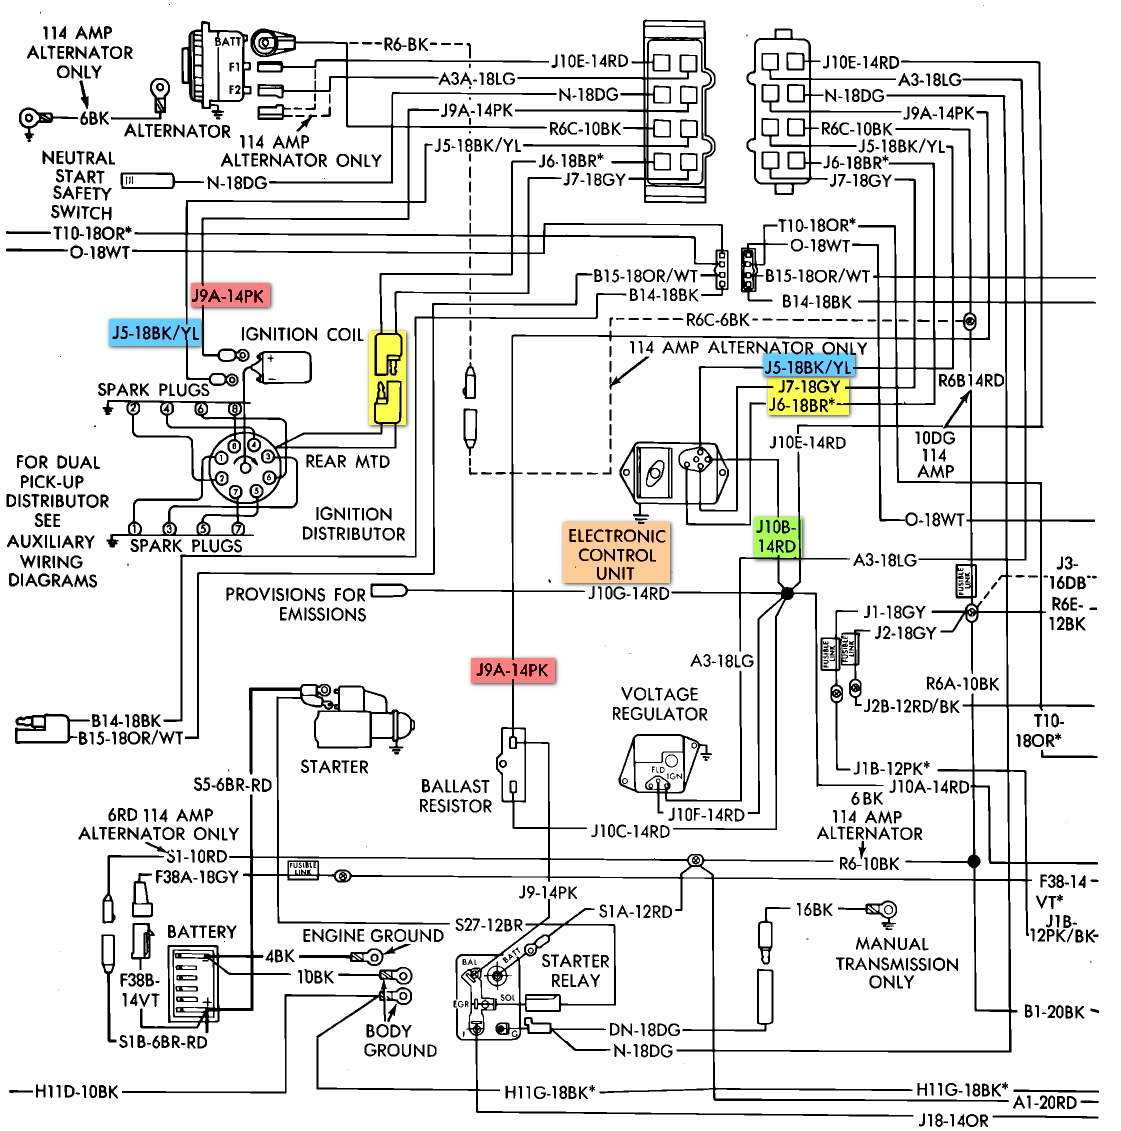 diagram] 1992 fleetwood prowler wiring diagram full version hd quality wiring  diagram - hoawiringpdf.albatroschambresdhotes.fr  wiring and fuse database